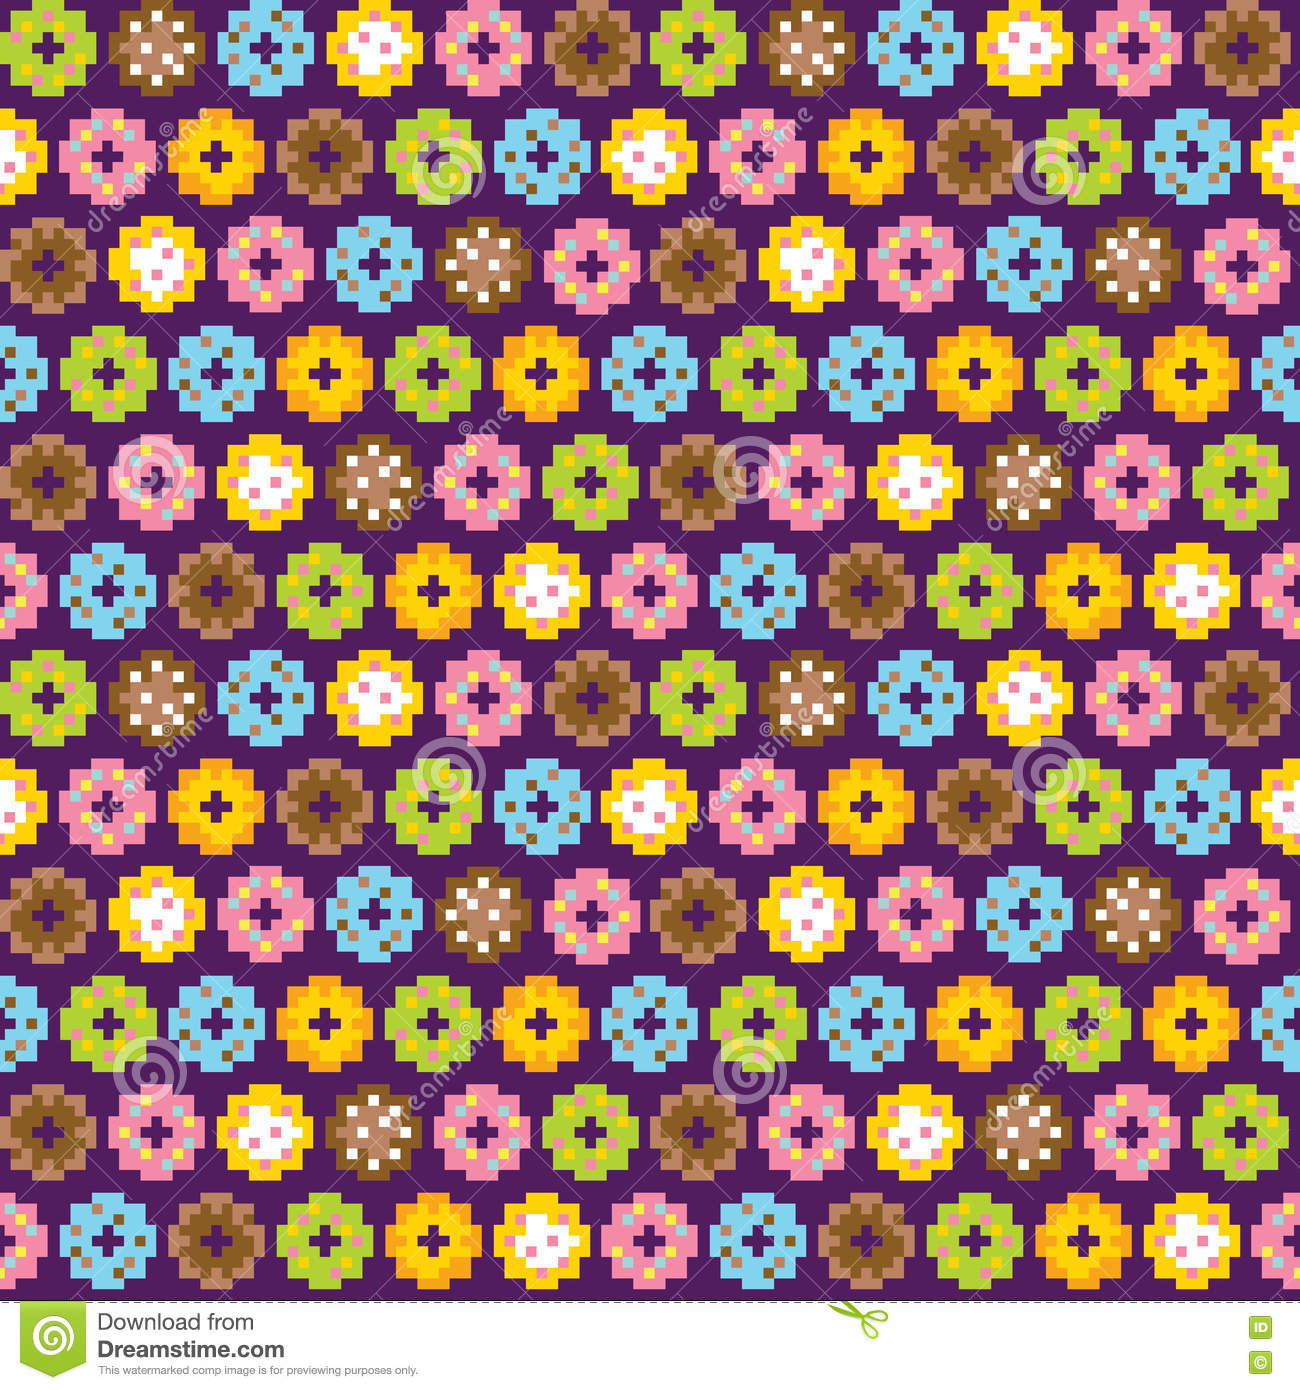 Pixel Art Style Donuts Colorful Seamless Vector Background